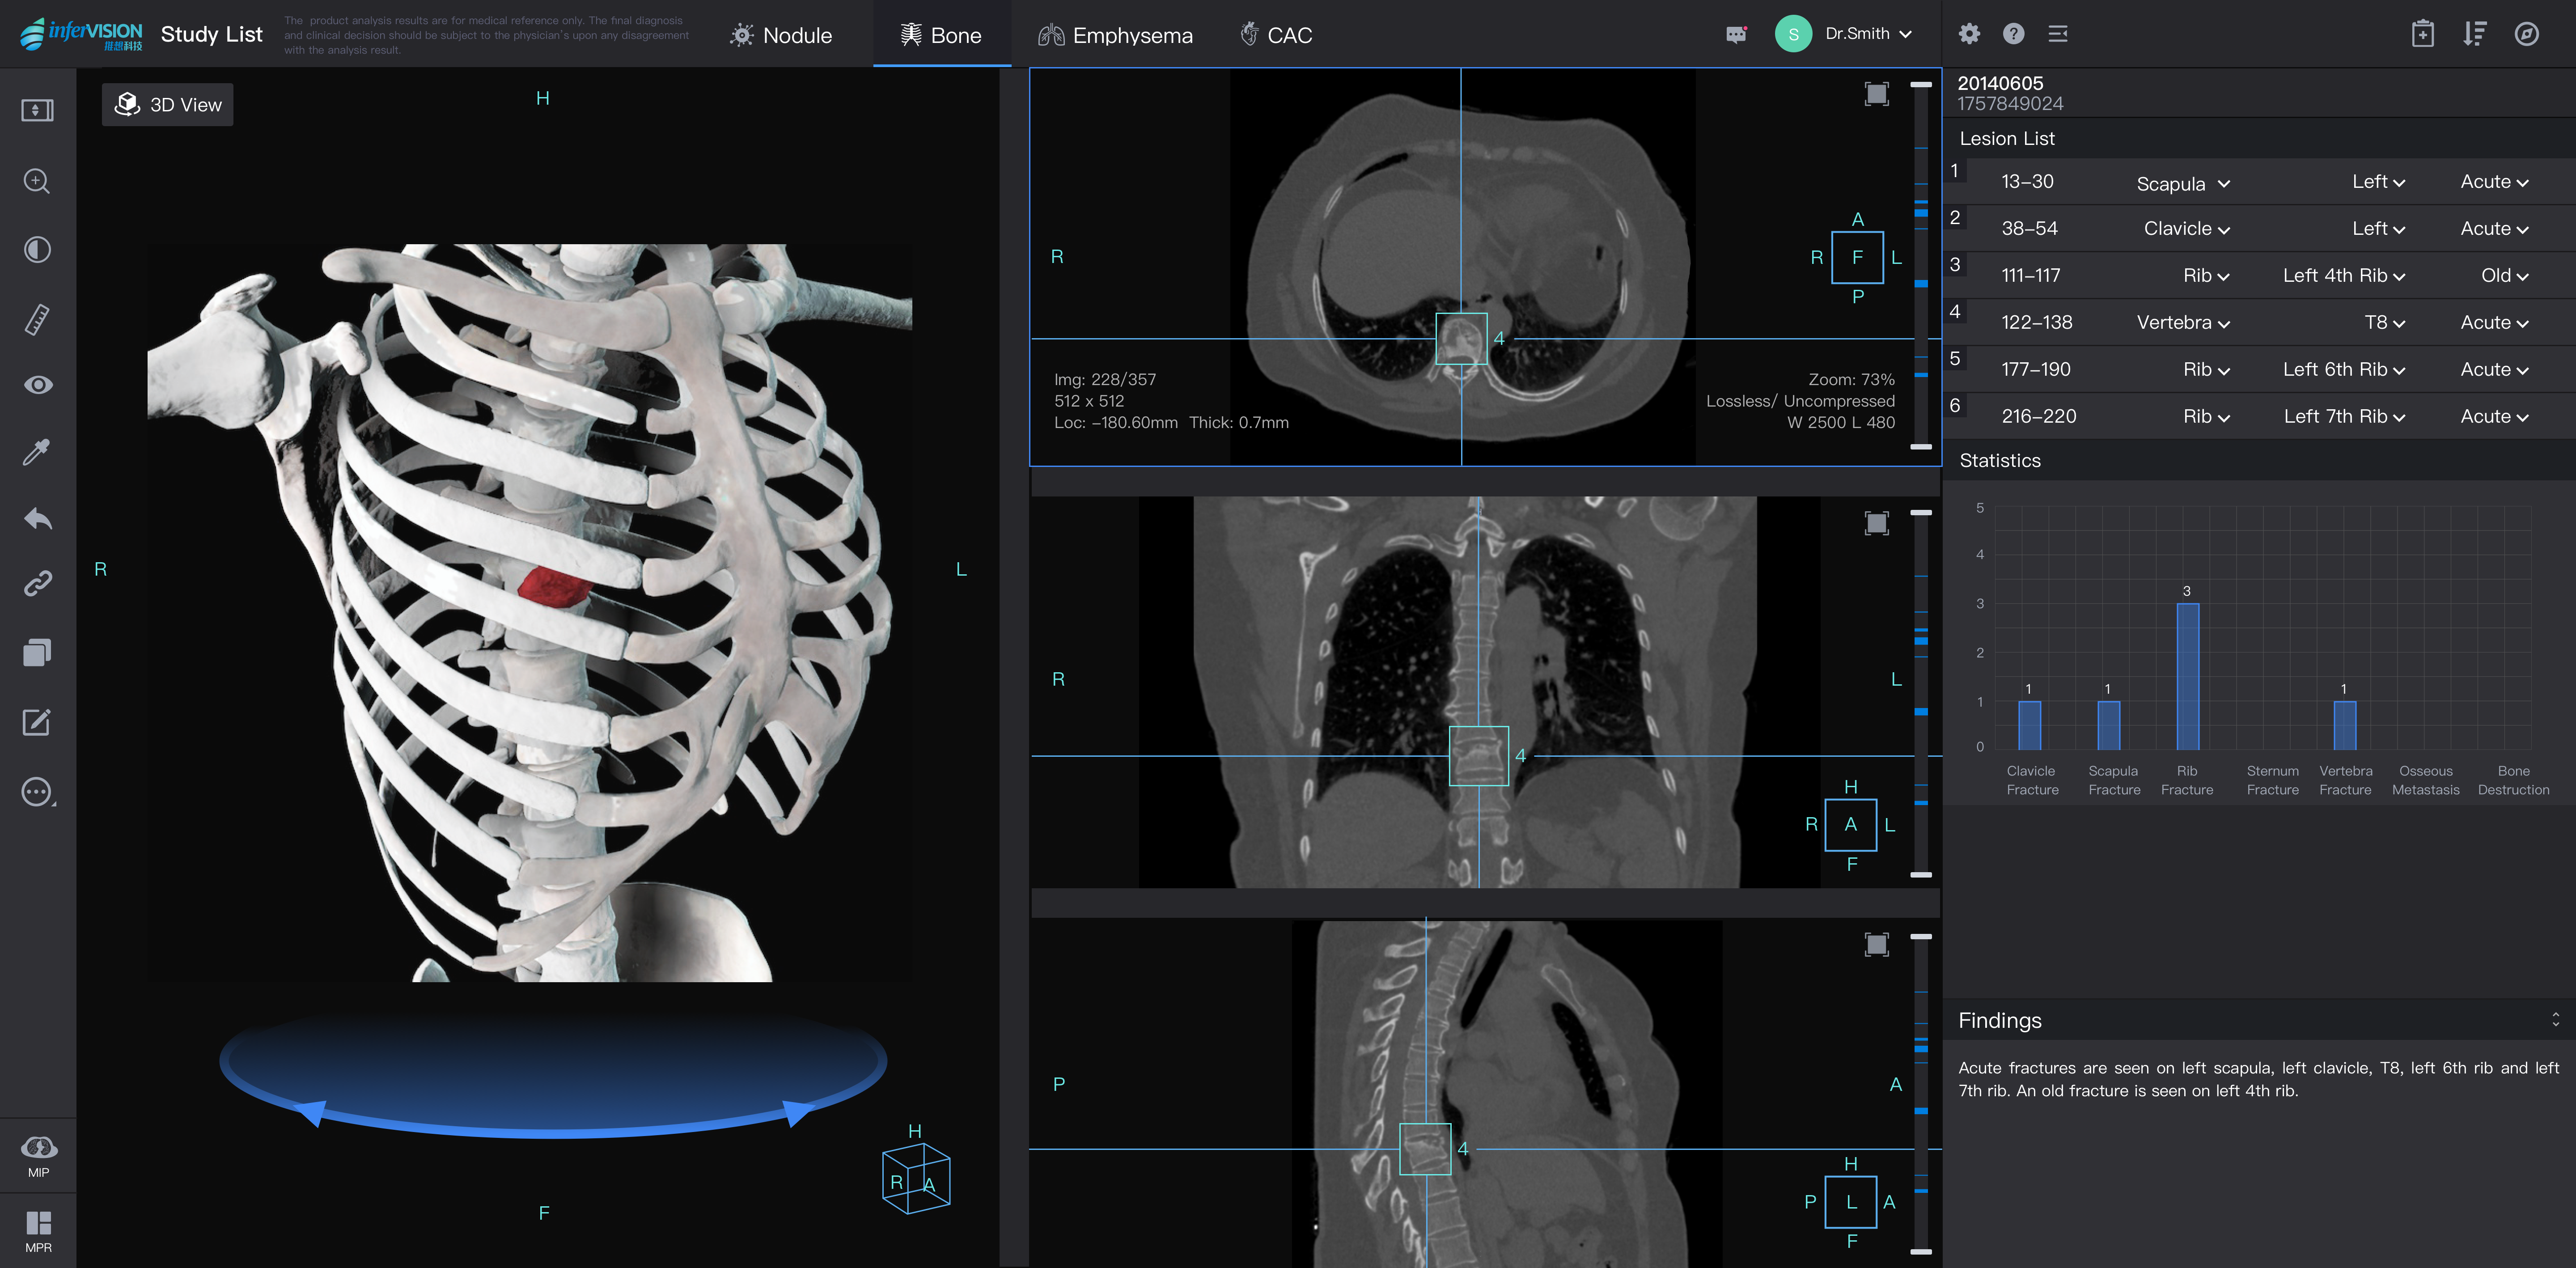 infervision medical imaging